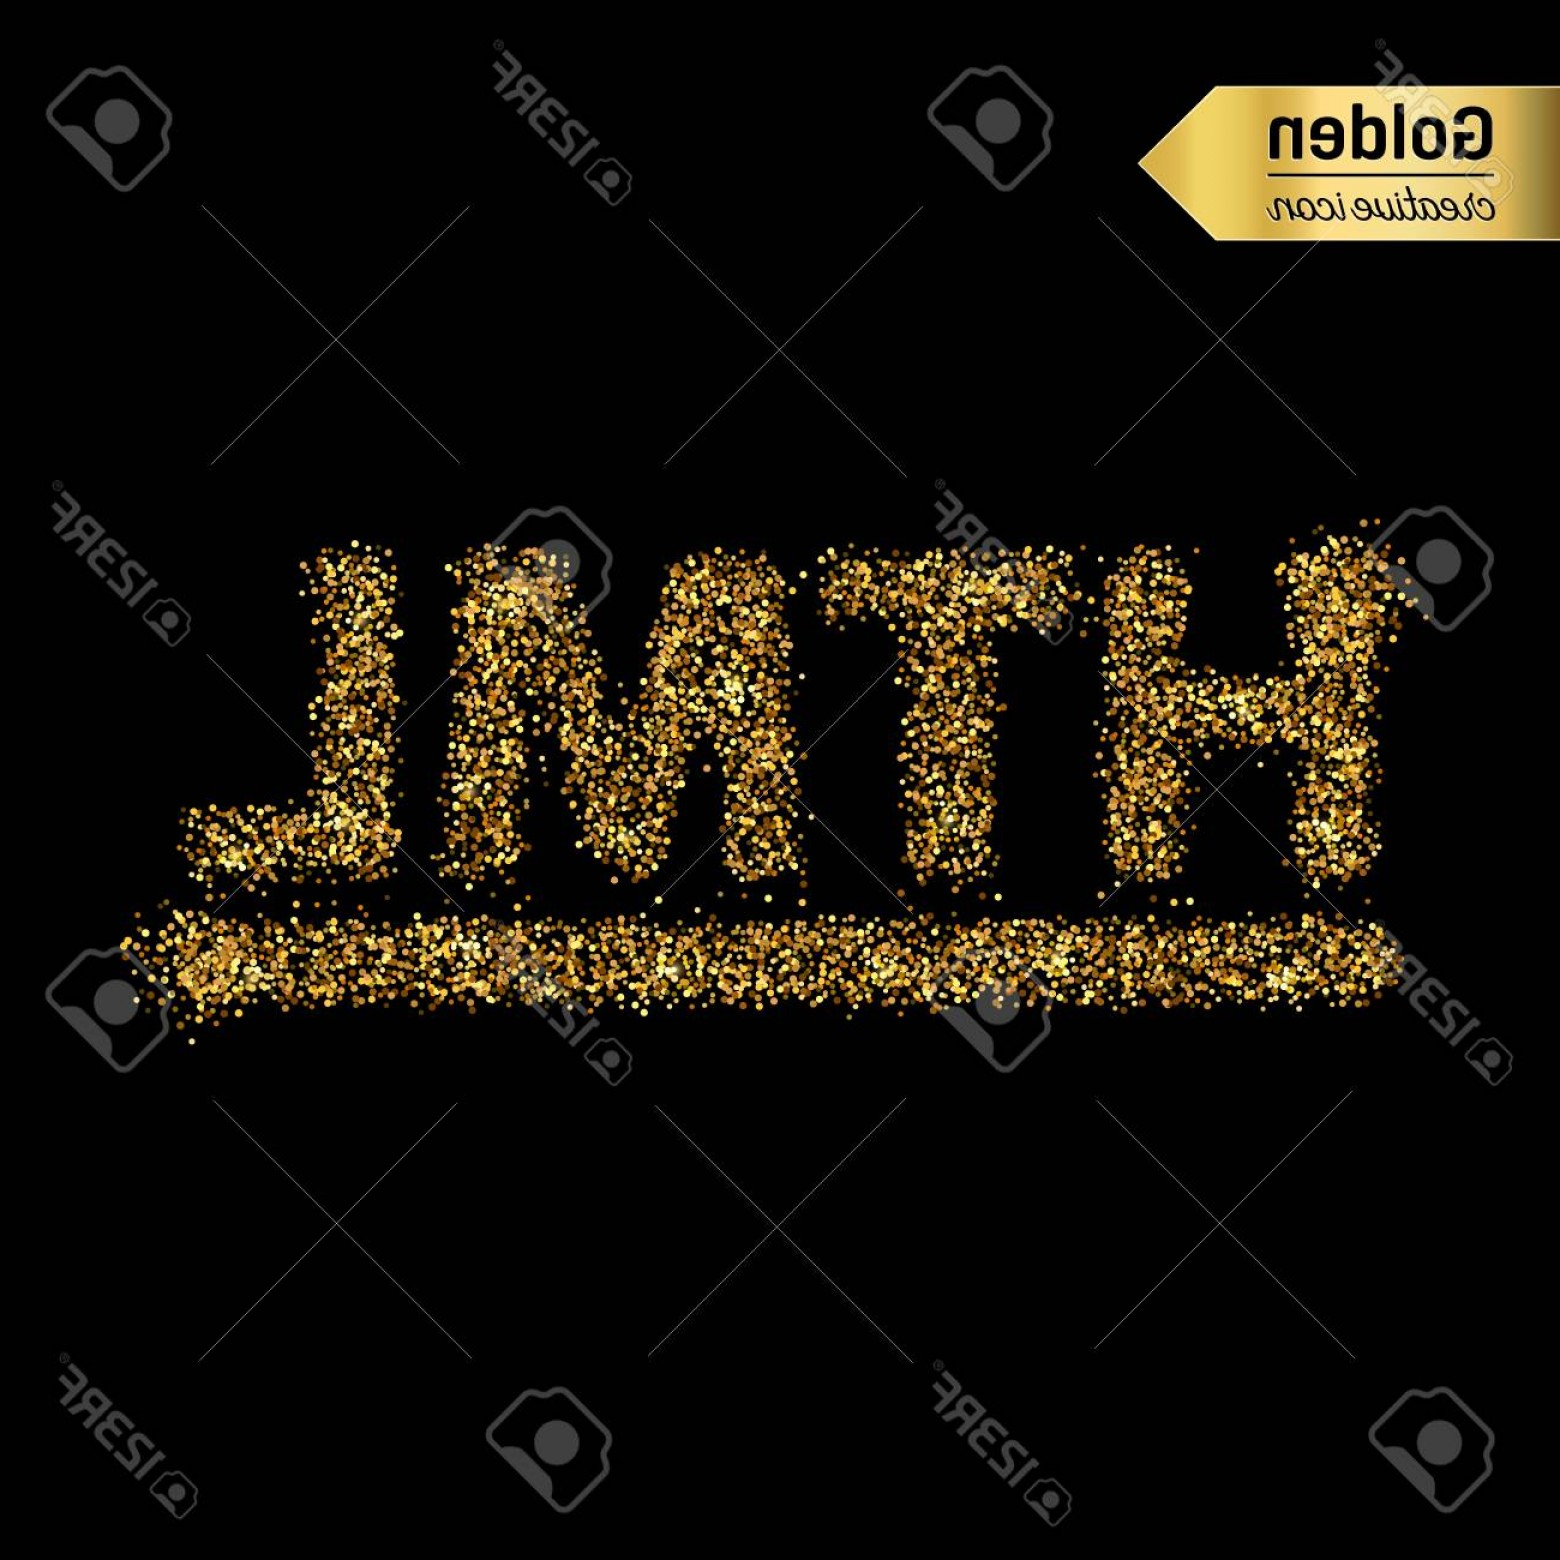 Bling Logo Vector: Photostock Vector Gold Glitter Vector Icon Of Html Symbol Isolated On Background Art Creative Concept Illustration For